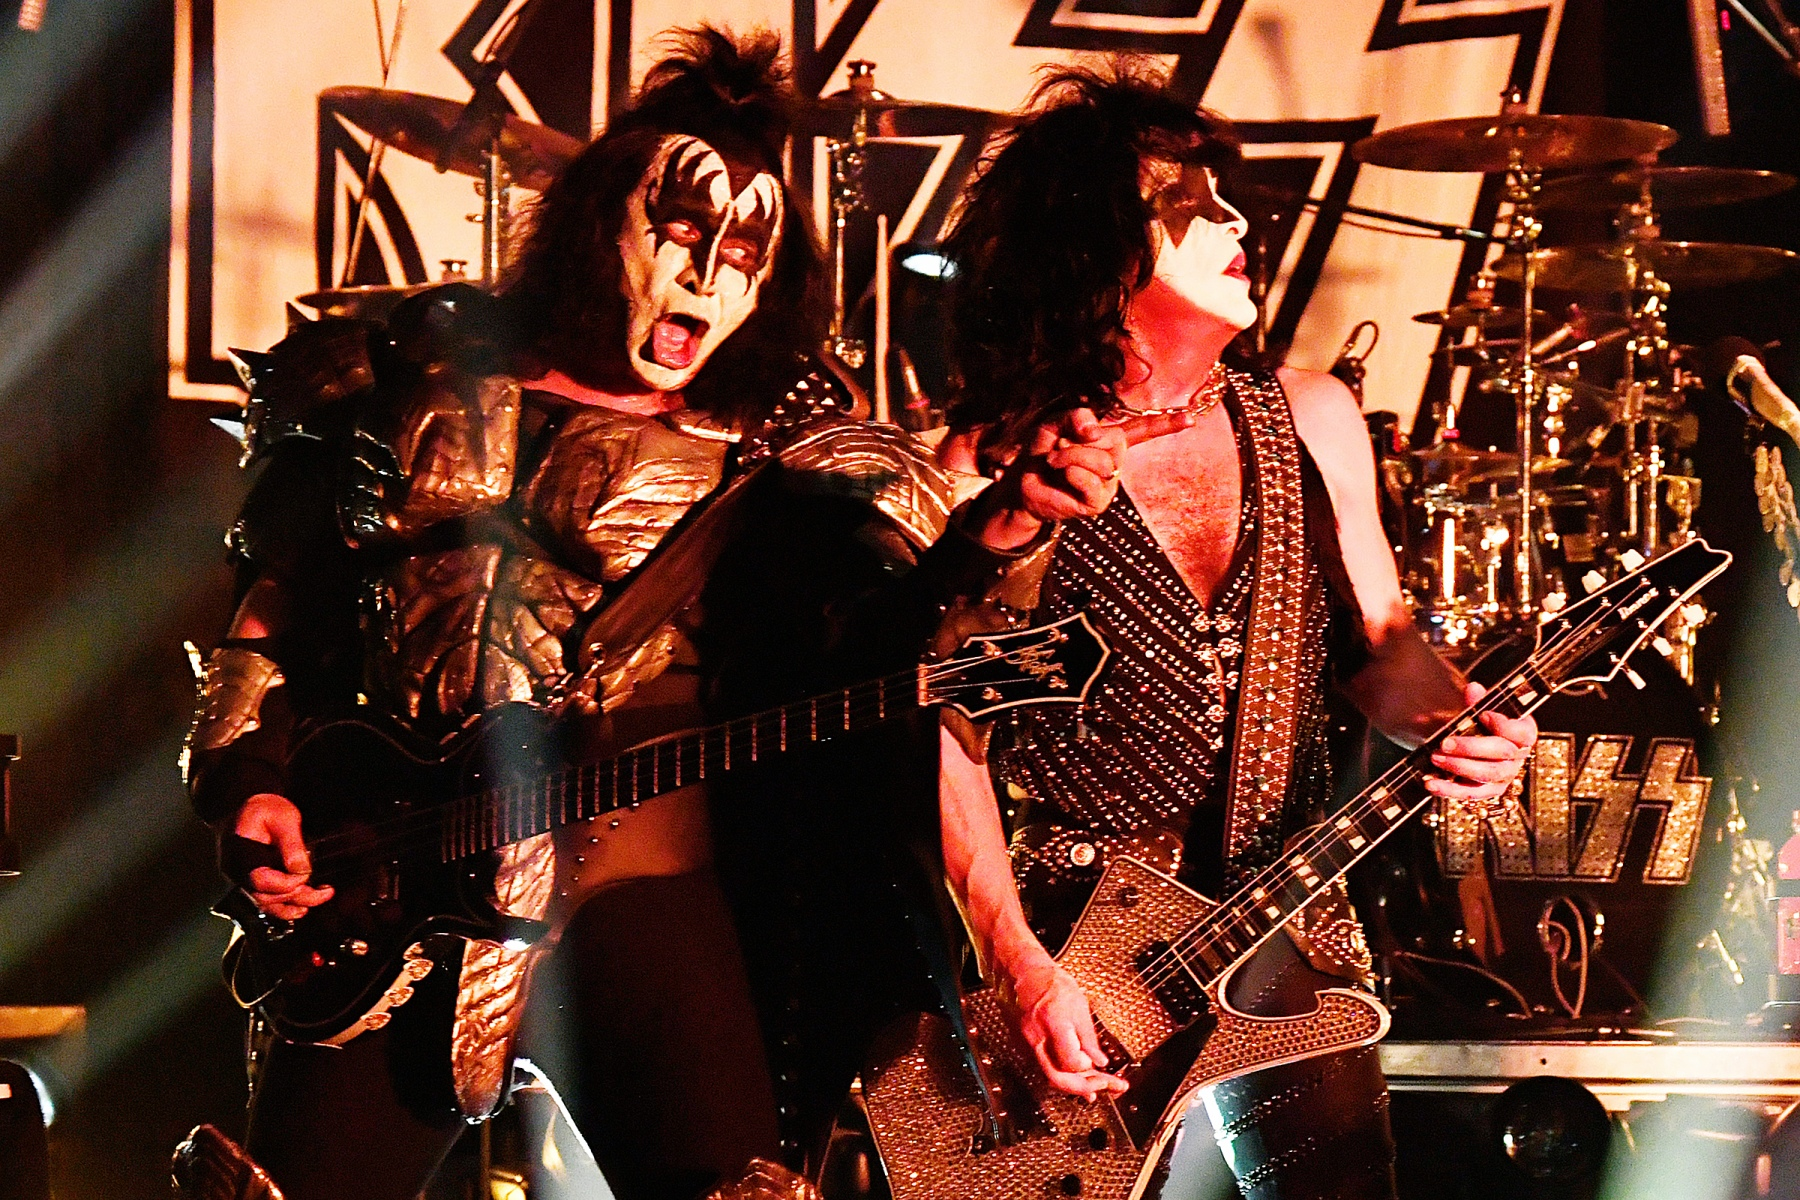 WEST HOLLYWOOD, CA - FEBRUARY 11:  KISS performs onstage during KISS Performs Private Concert For SiriusXM At Whisky A Go Go In Los Angeles at Whisky a Go Go on February 11, 2019 in West Hollywood, California.  (Photo by Kevin Mazur/Getty Images for SiriusXM)